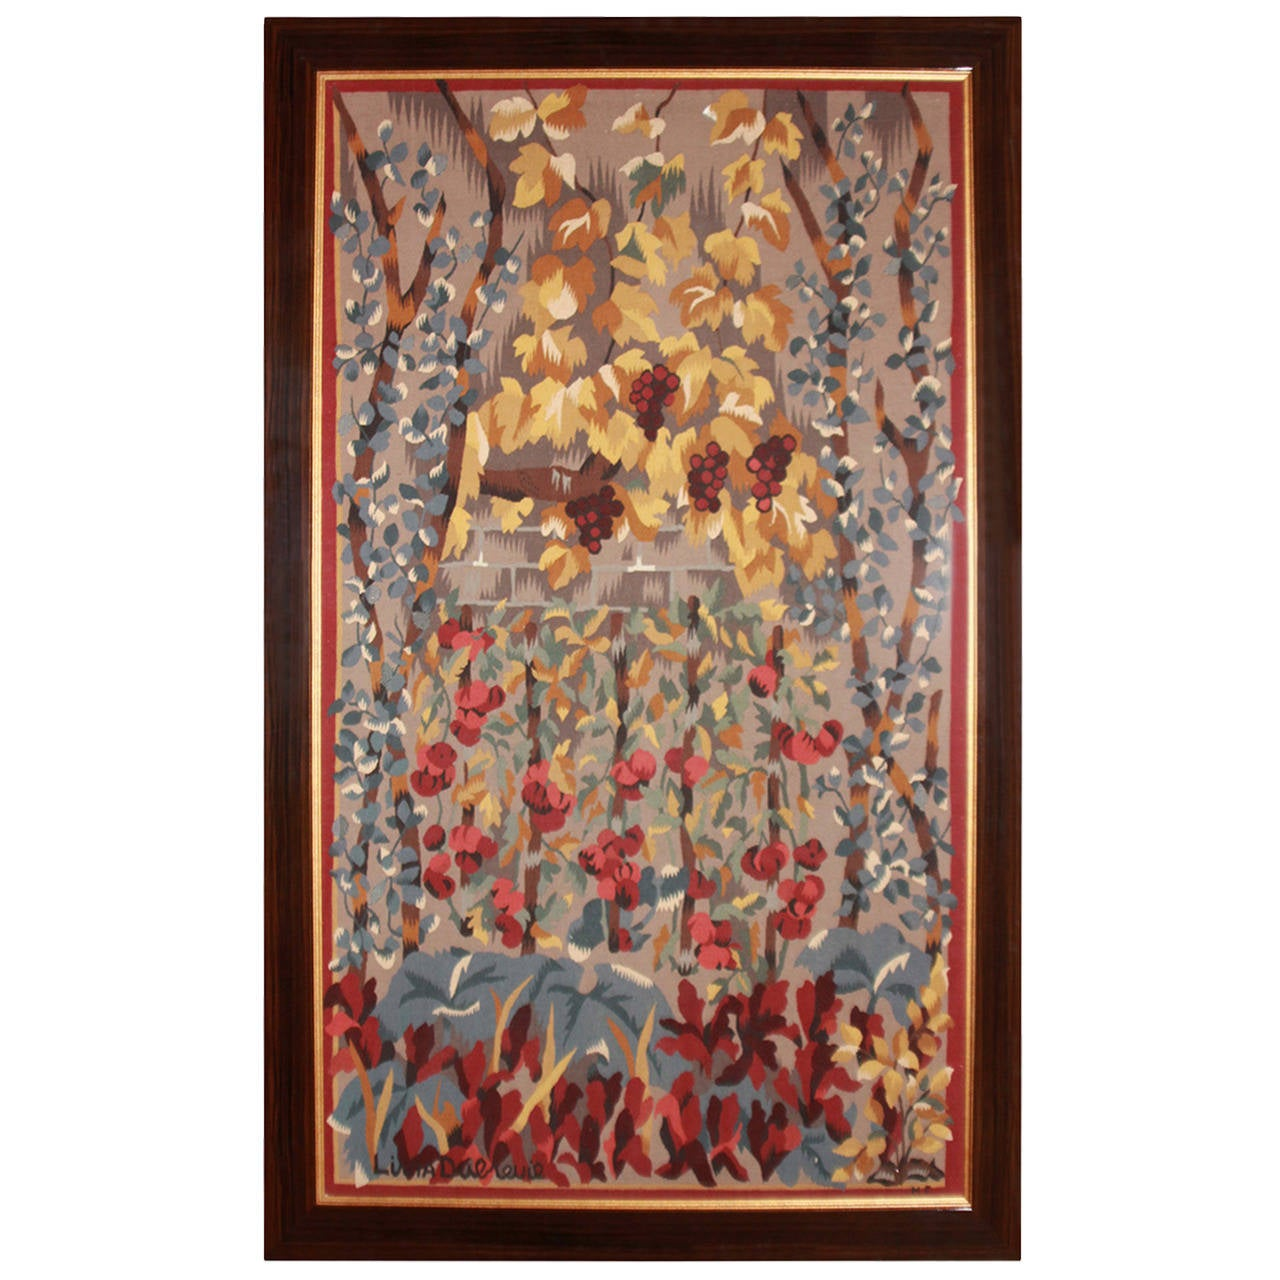 Harvest Aubusson Tapestry by Dubreuil